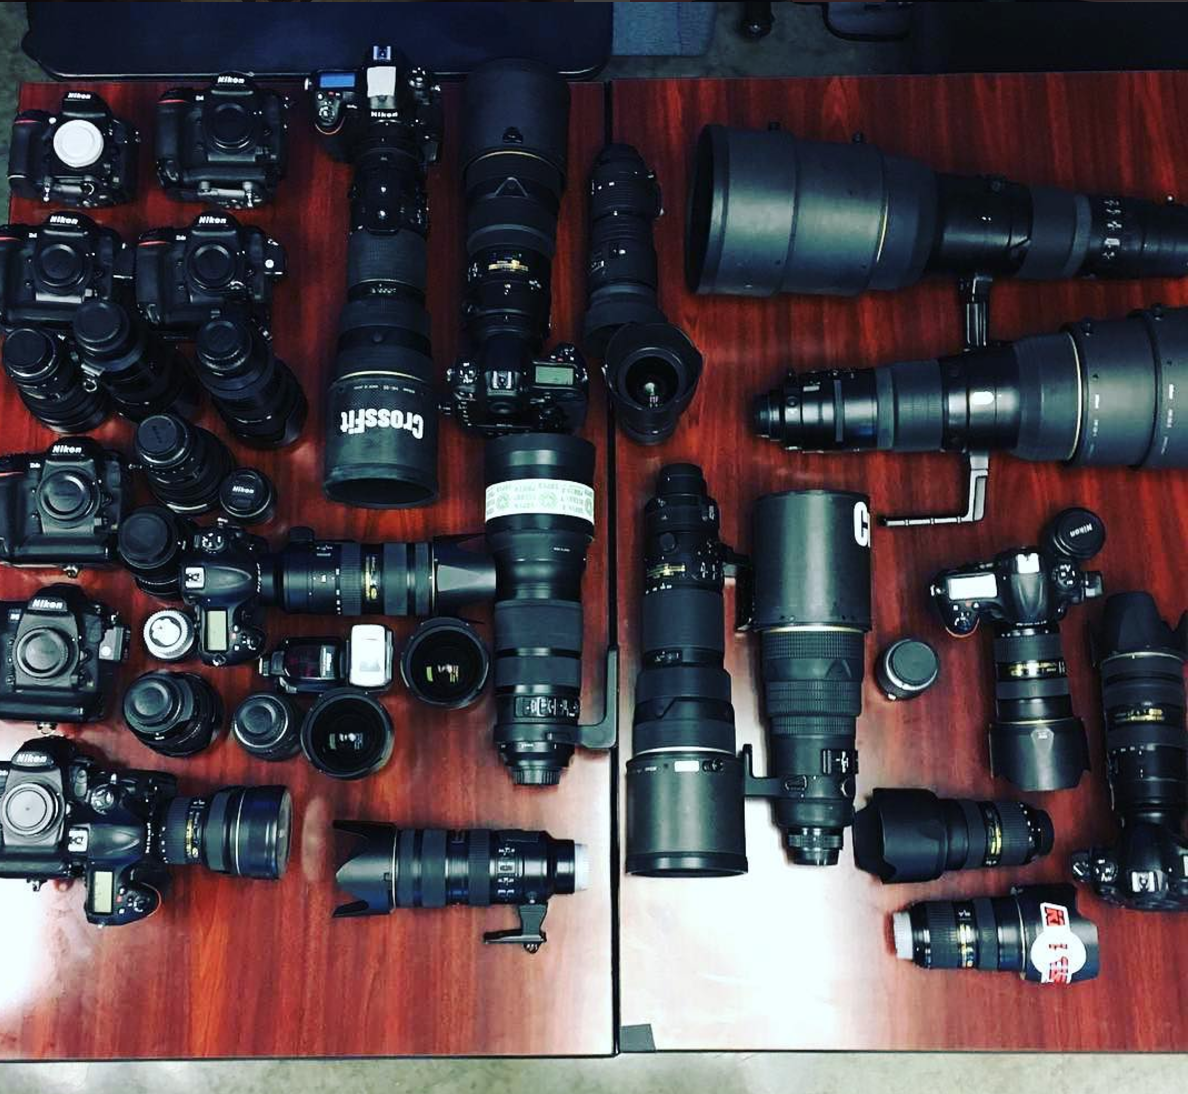 The full collection of Nikon gear at the 2016 CrossFit Games